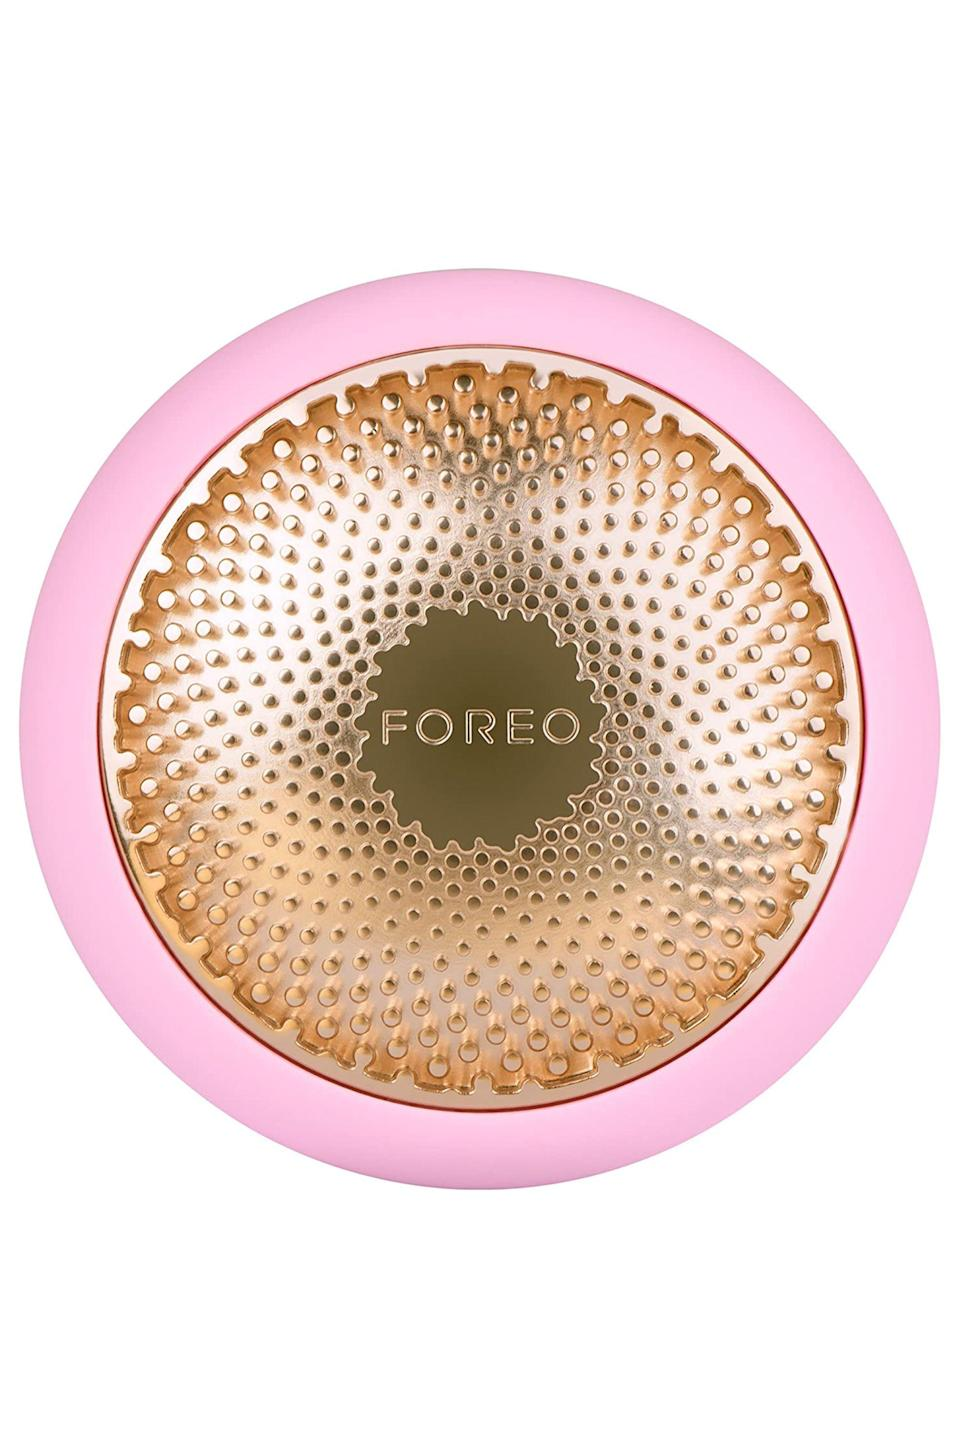 """<p><strong>Foreo</strong></p><p>sephora.com</p><p><strong>$199.00</strong></p><p><a href=""""https://go.redirectingat.com?id=74968X1596630&url=https%3A%2F%2Fwww.sephora.com%2Fproduct%2Fufo-tm-P433463&sref=https%3A%2F%2Fwww.elle.com%2Fbeauty%2Fmakeup-skin-care%2Fg33004611%2Fbest-led-masks%2F"""" rel=""""nofollow noopener"""" target=""""_blank"""" data-ylk=""""slk:Shop Now"""" class=""""link rapid-noclick-resp"""">Shop Now</a></p><p>Not your typical LED mask but it functions just the same. The Foreo UFO using hot and cold temperature settings to improve the skin in just 90 seconds. Plus, the pulsating section of the treatment feels like a spa-quality face massage. You're welcome. </p>"""